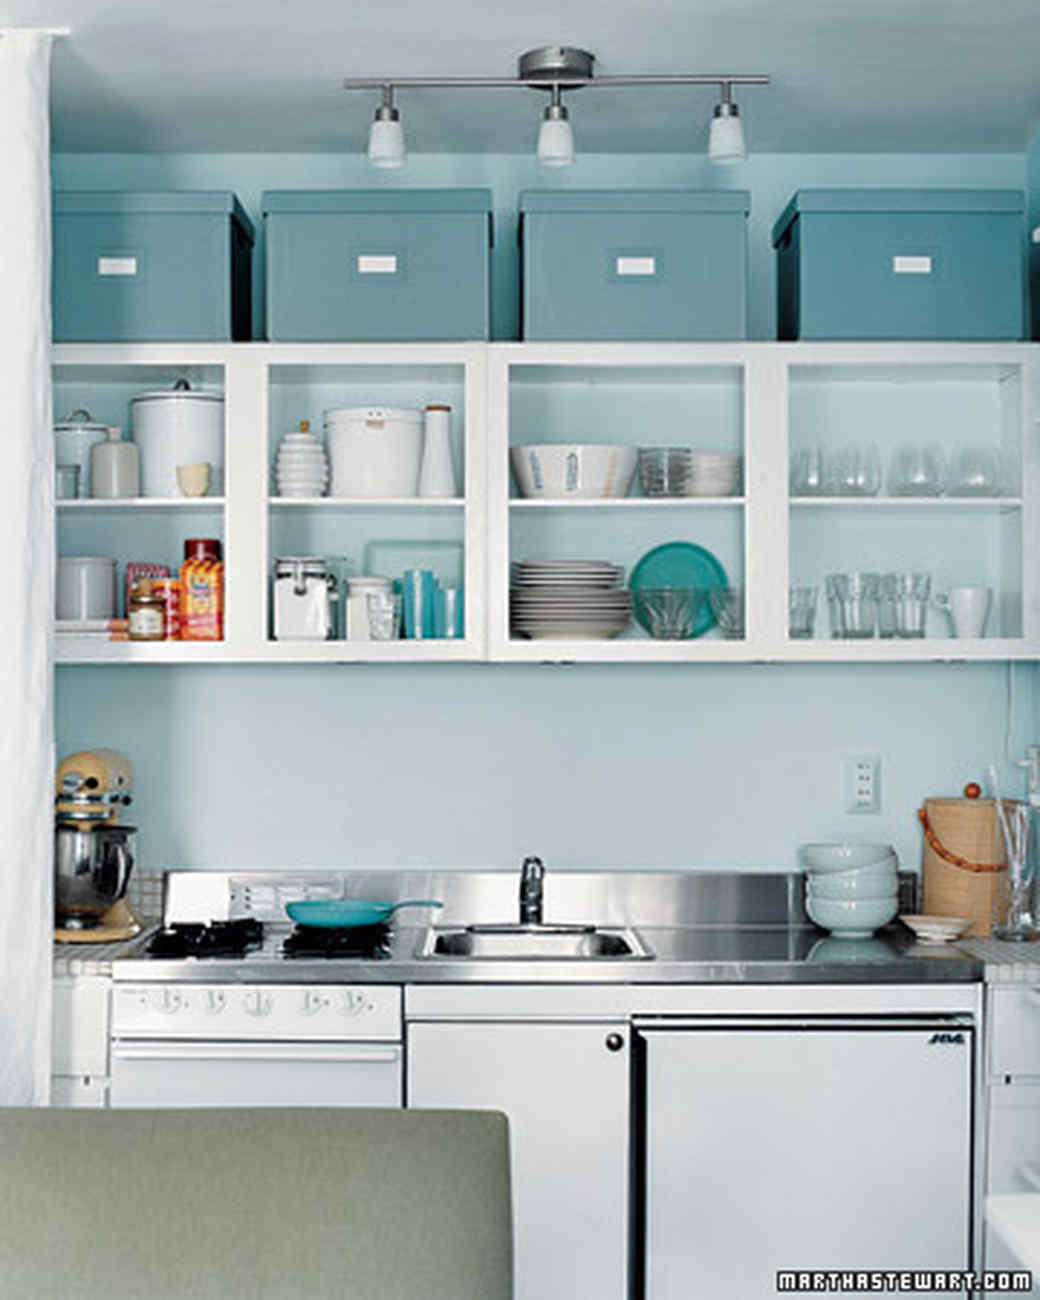 kitchen organization ideas small spaces kitchen storage ideas small kitchen storage ideas for more efficient space martha stewart